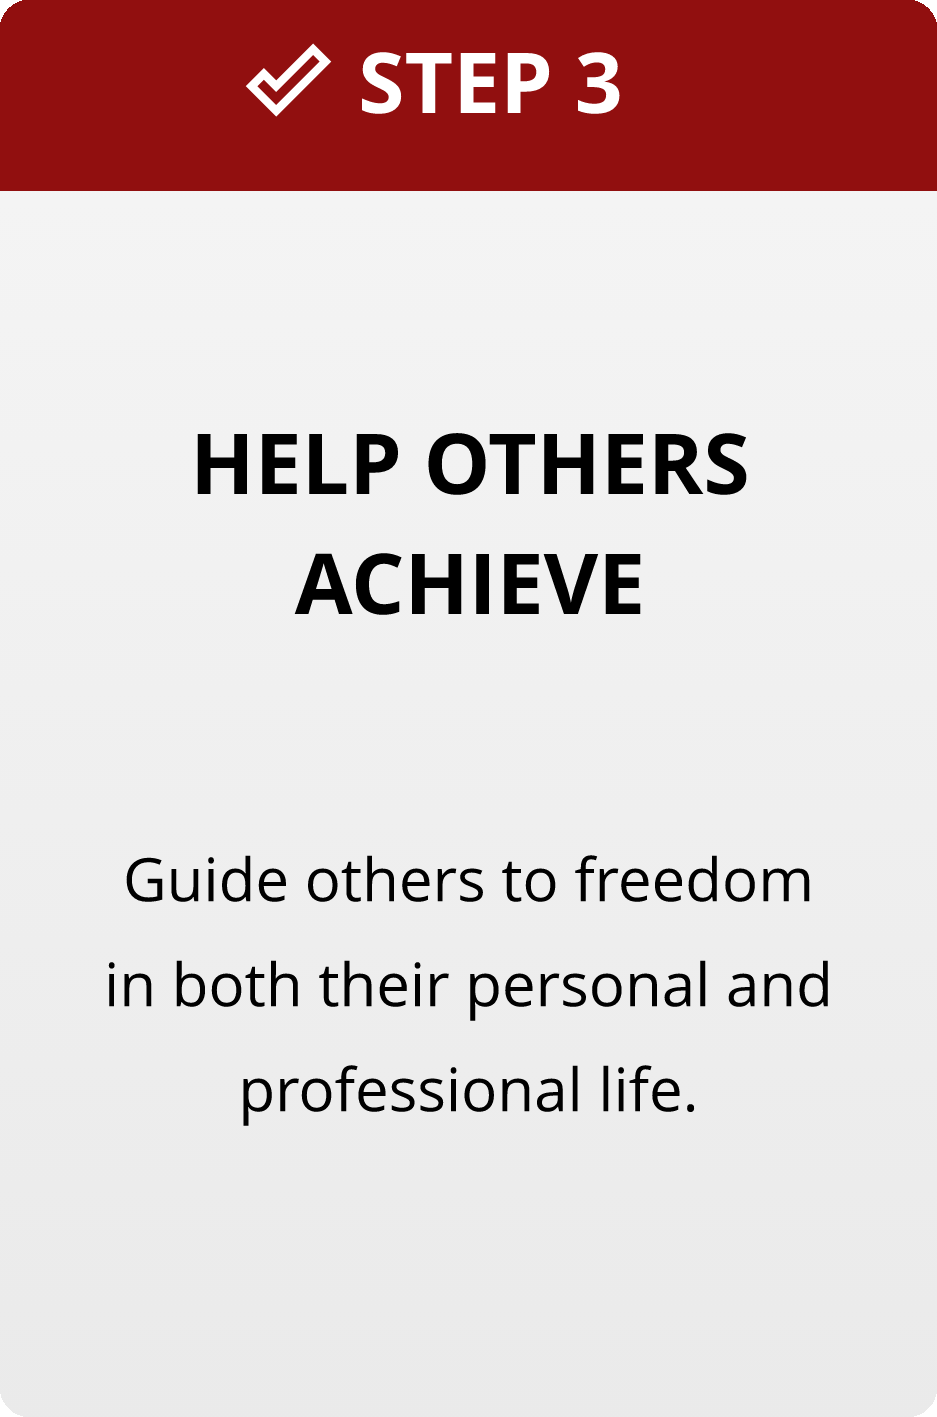 Step 3: Help others achieve. Guide others to freedom in both their personal and professional life.